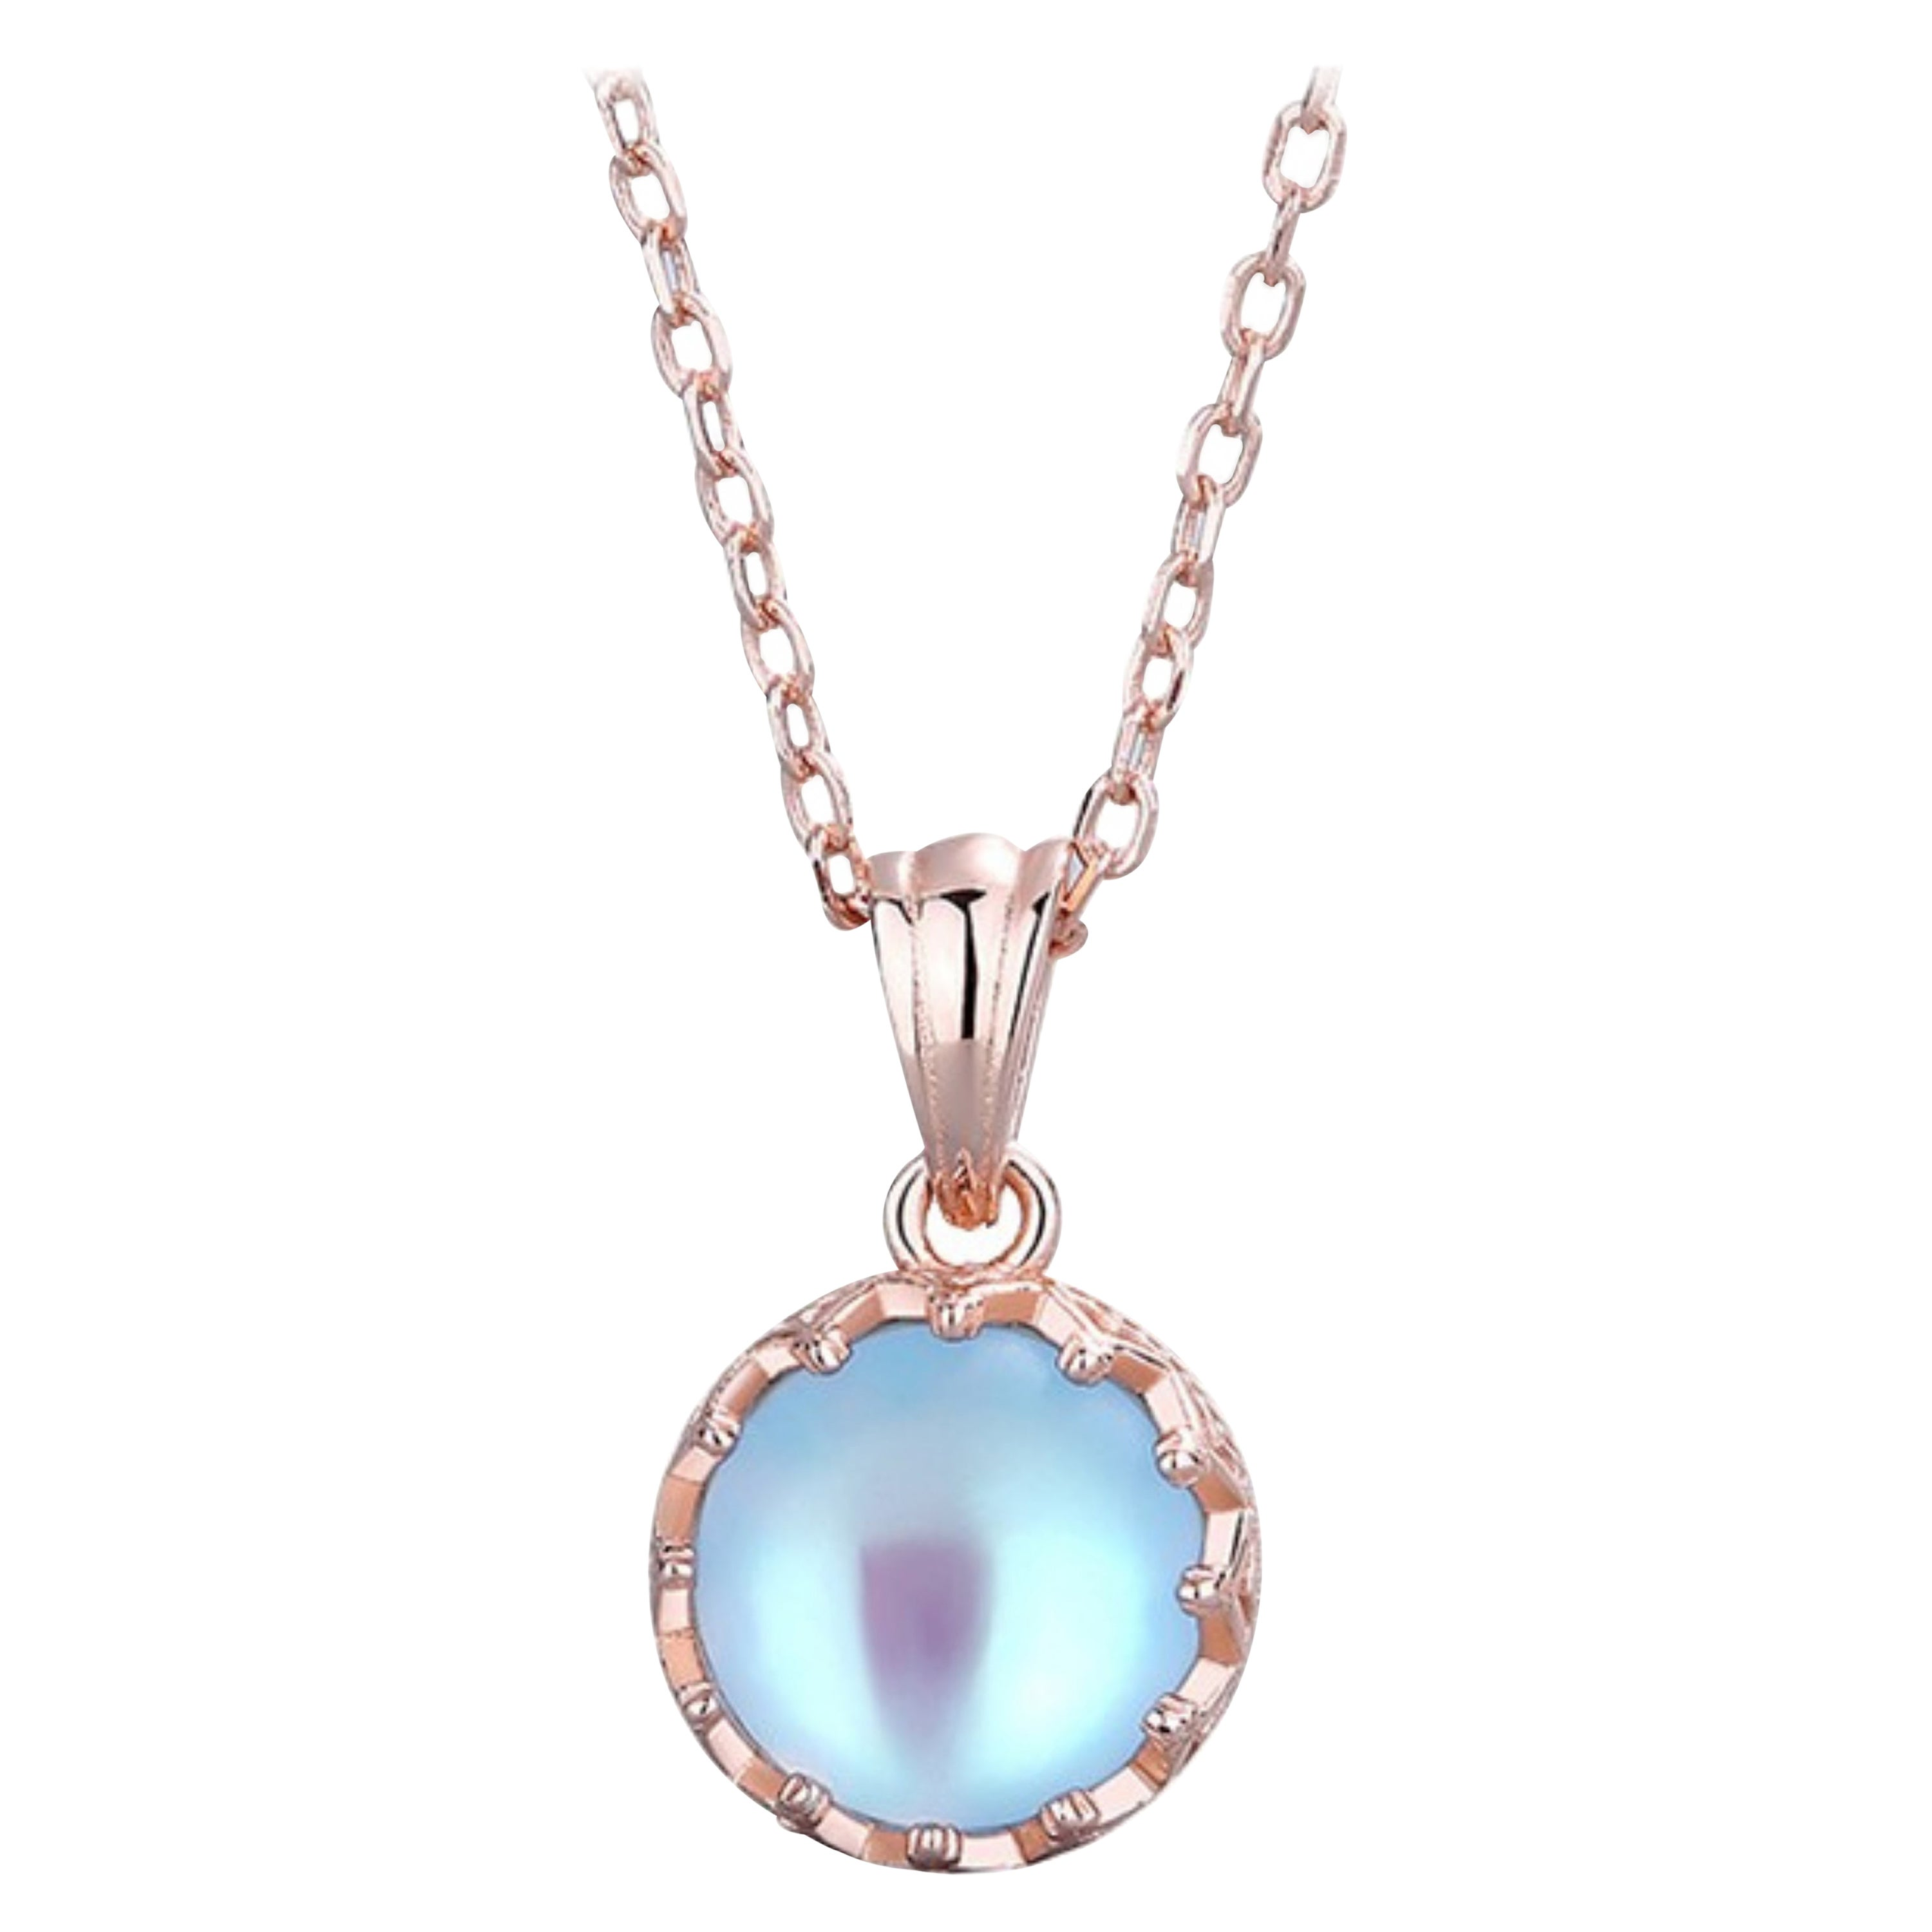 Moonstone Necklaces Rose Gold Plated and Sterling Silver